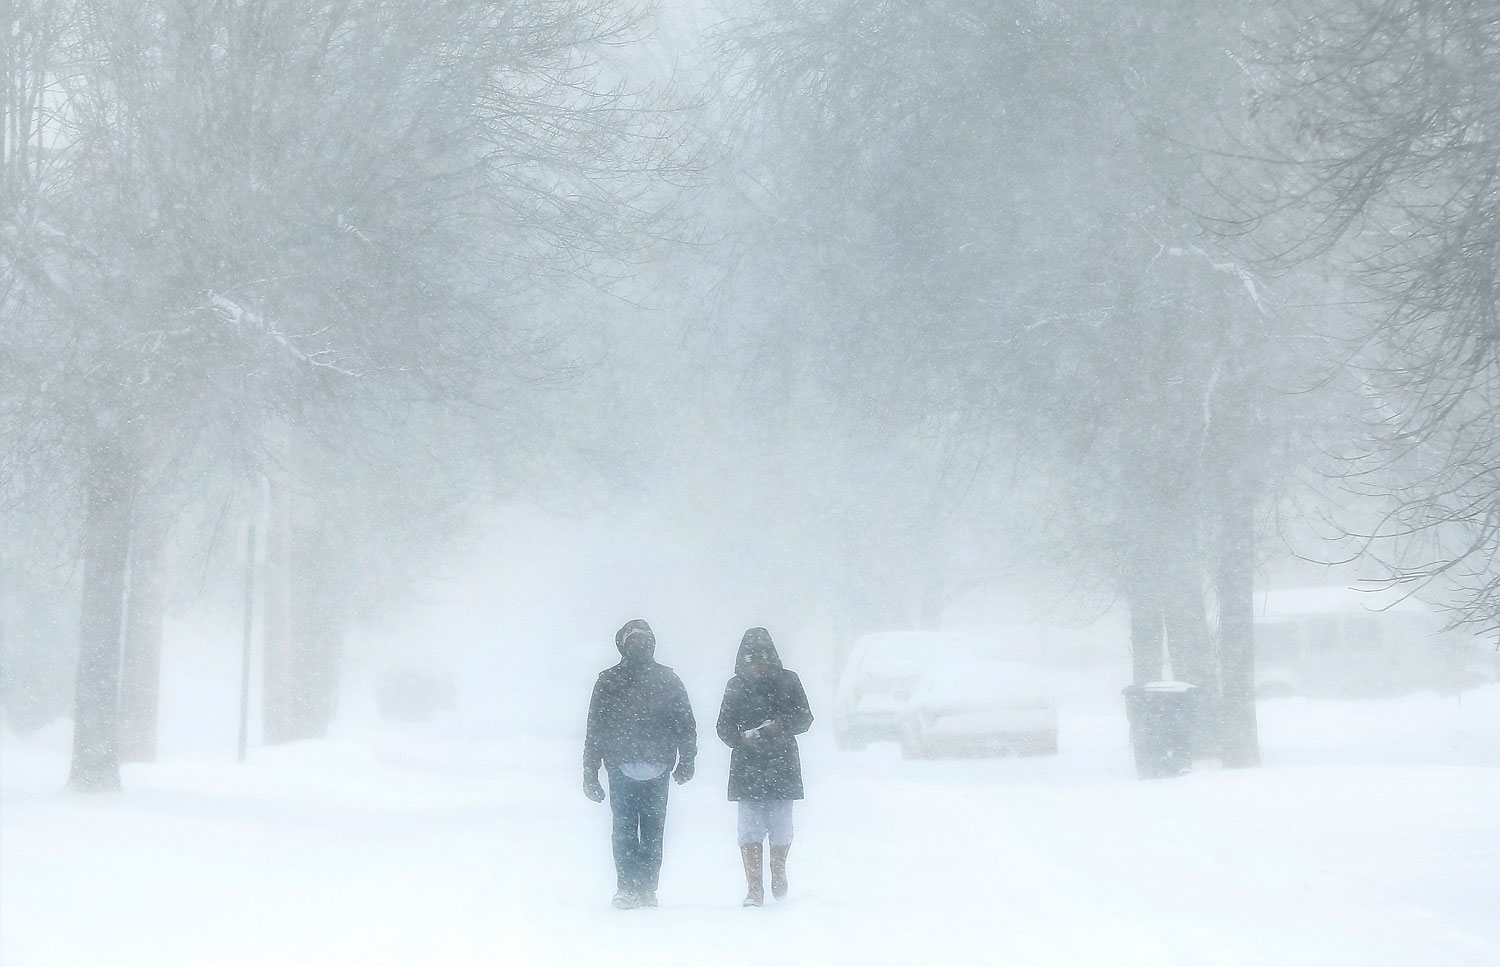 Pedestrians during a snow storm in Detroit, March 12, 2014. Another winter storm is expected from Missouri to Delaware on Sunday.